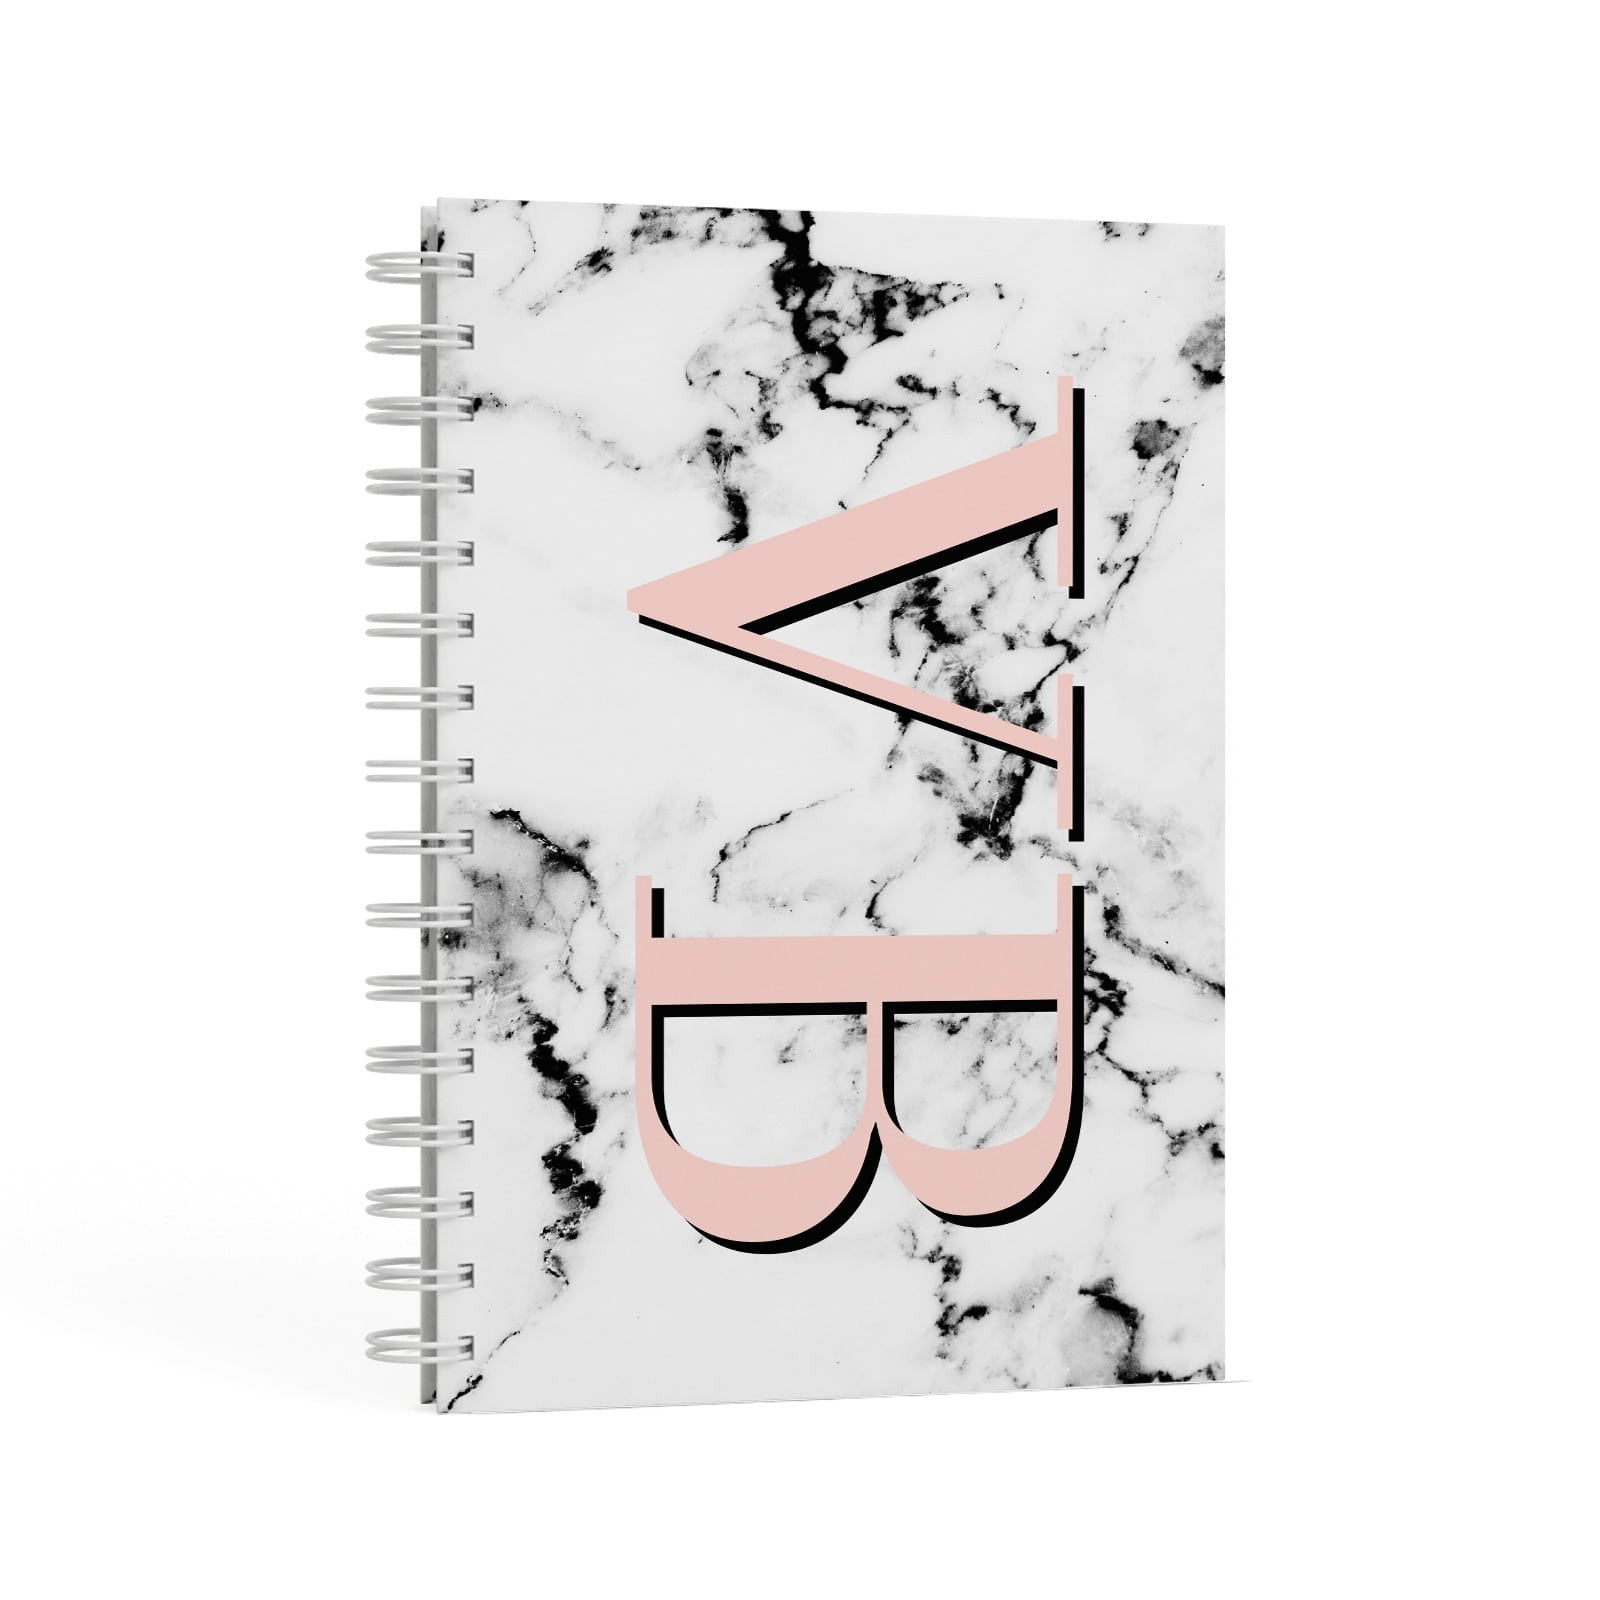 Personalised Coral Malble Initials A5 Hardcover Notebook Second Side View